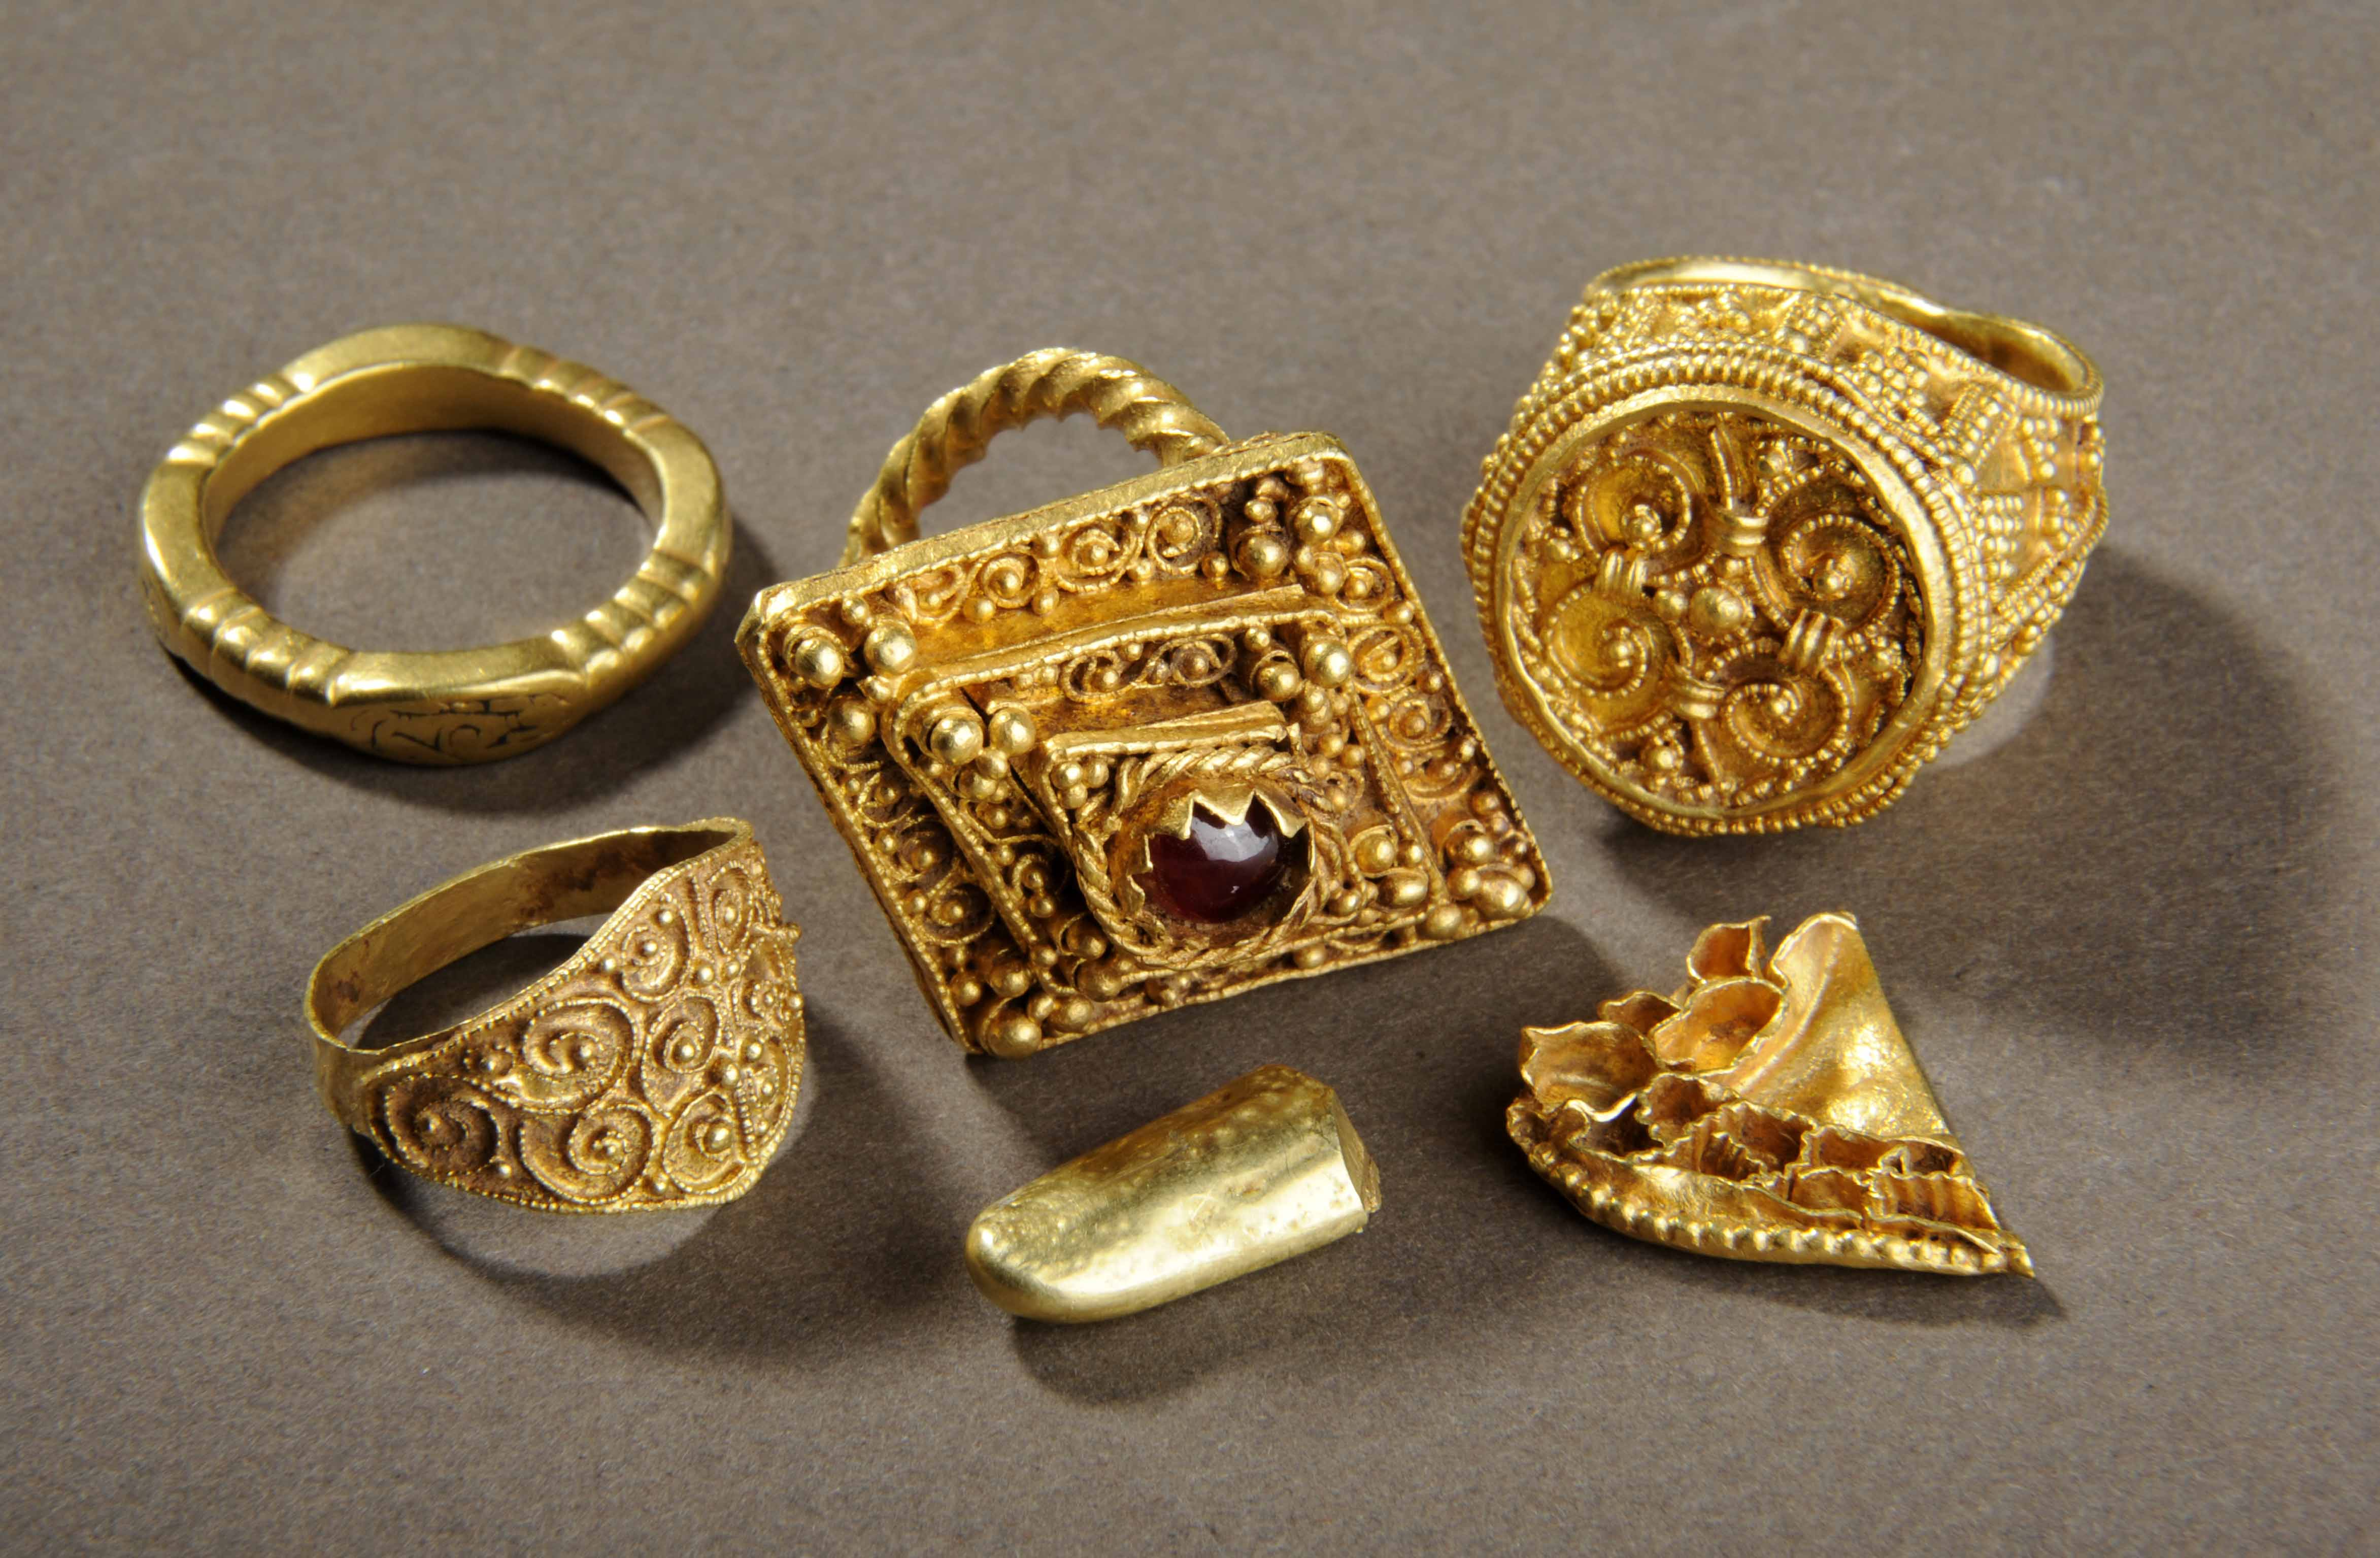 Four gold rings, a fragment of a brooch, a piece of gold ingot and a lead spindle whorl